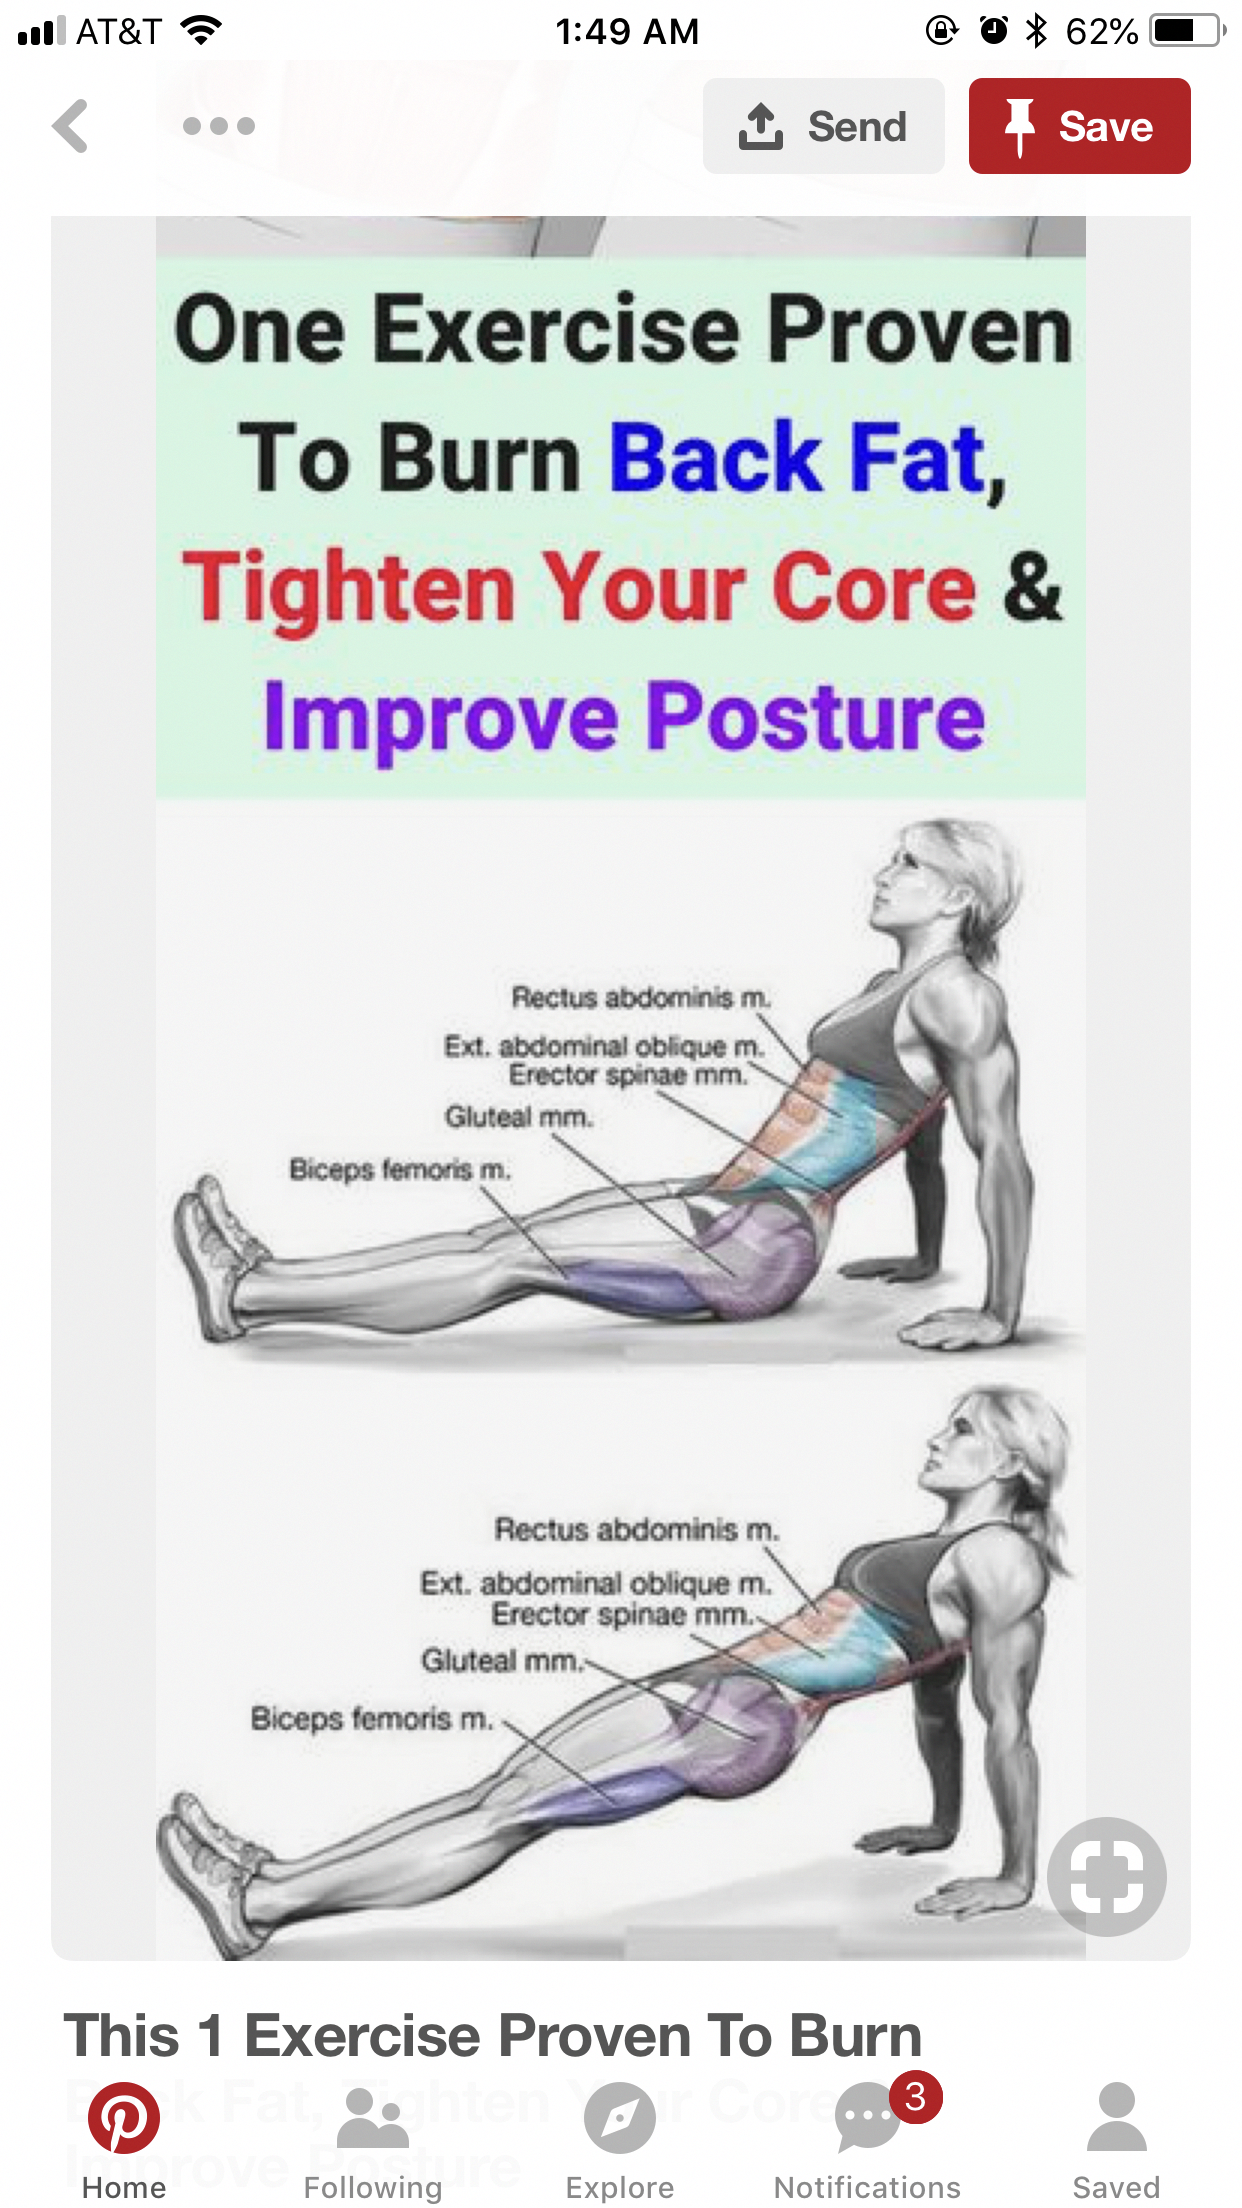 Yoga Pose To Tighten Core And Improve Posture Yogaposture Fitness Body Exercise Yoga Fitness